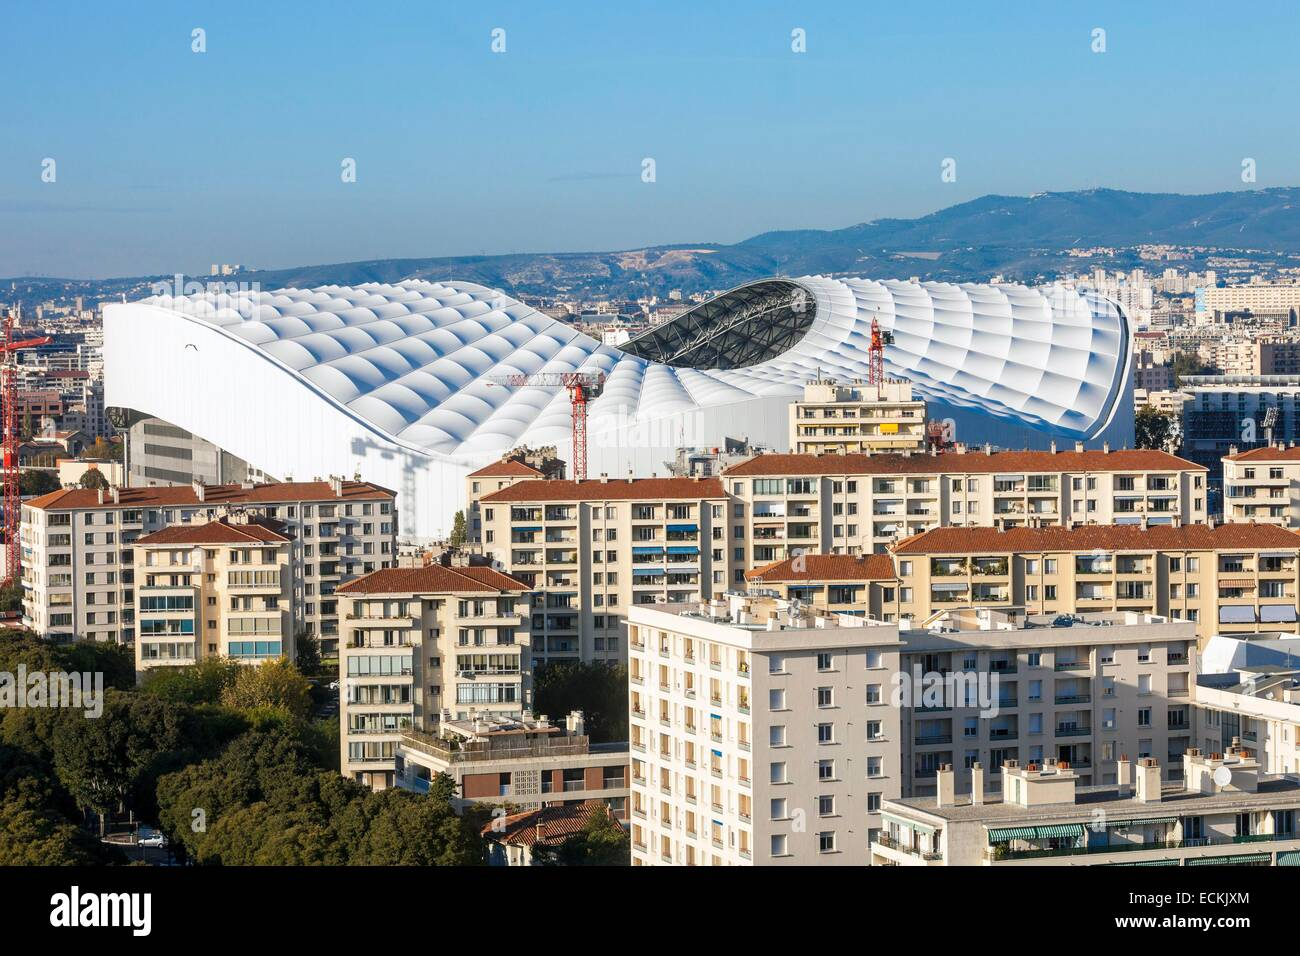 France, Bouches du Rhone, Marseille, the Stade VΘlodrome - Stock Image